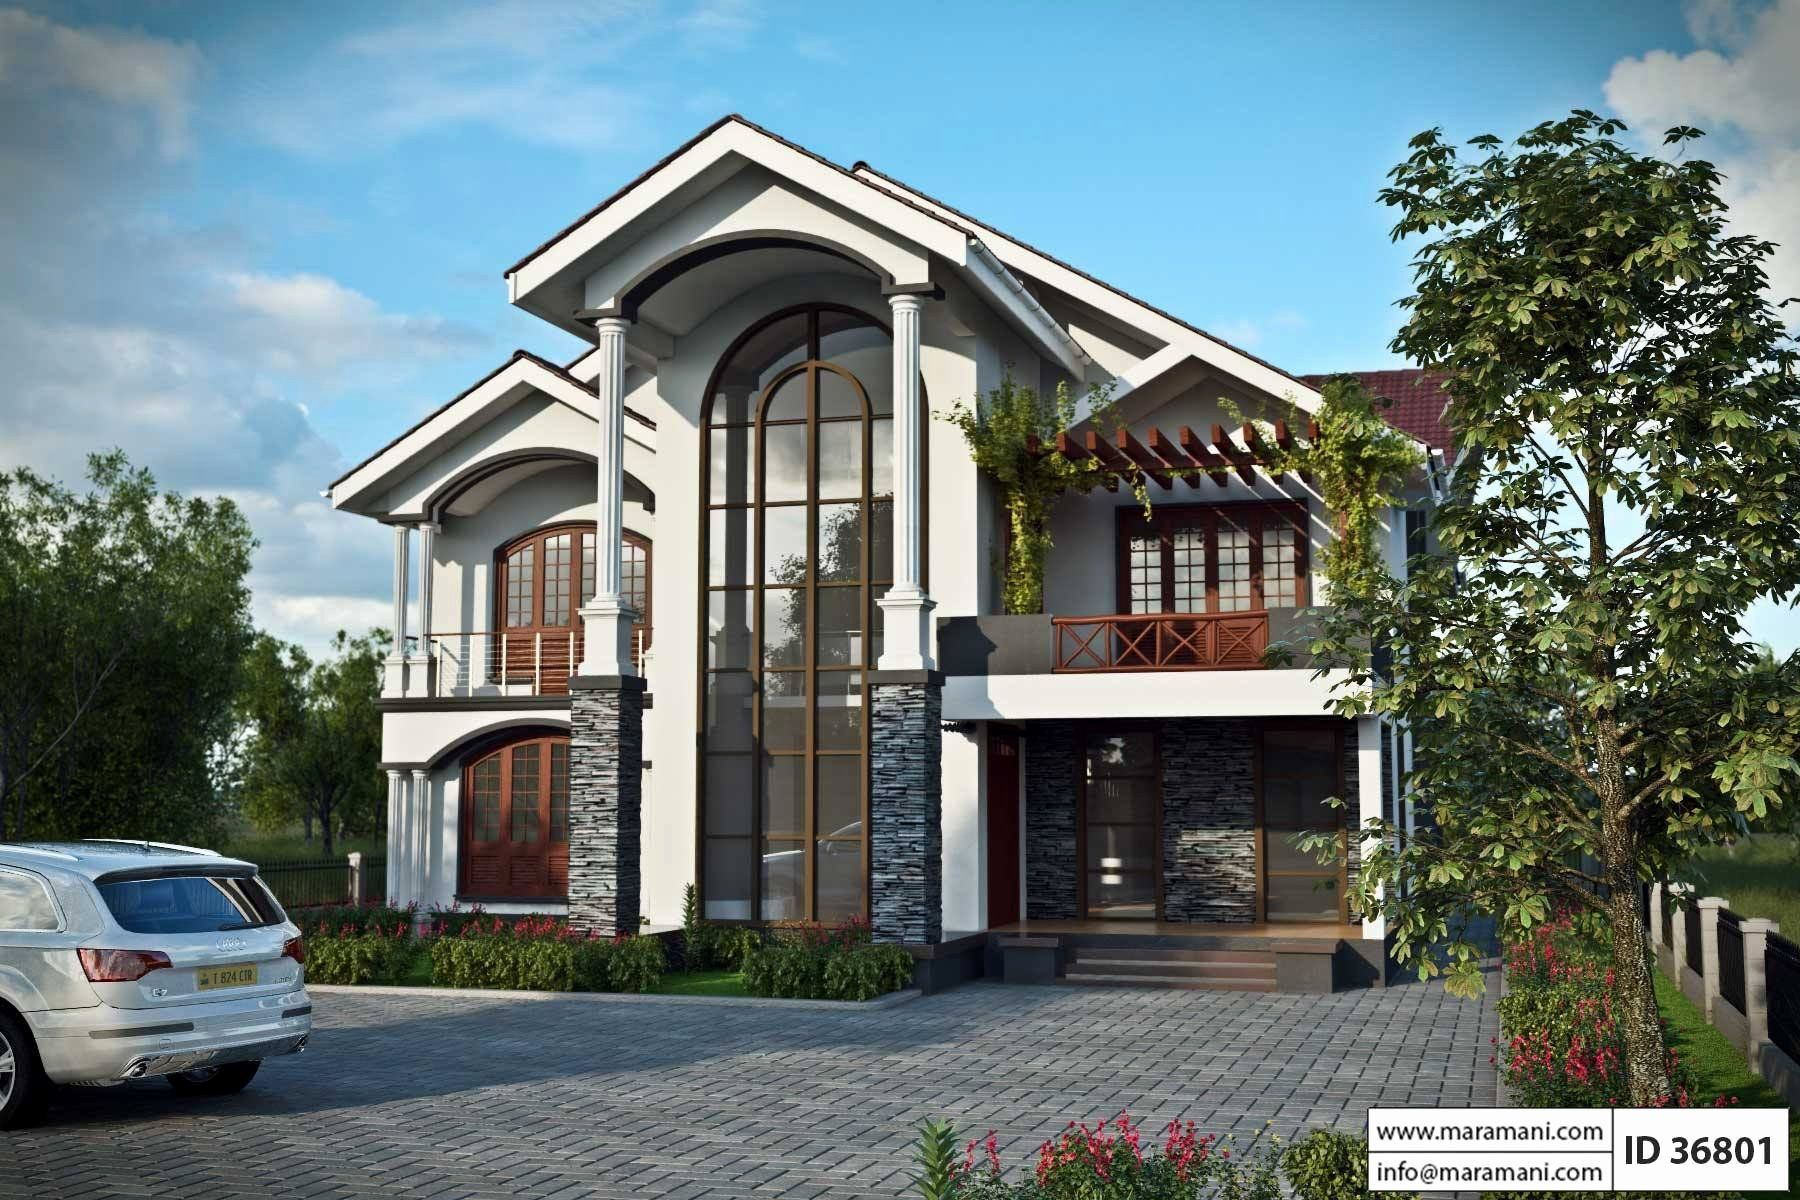 House Plans 6 Bedrooms Lovely Six Bedroom House Plan Id House Designs By Maramani Bedroom House Plans House Plans Pool House Plans